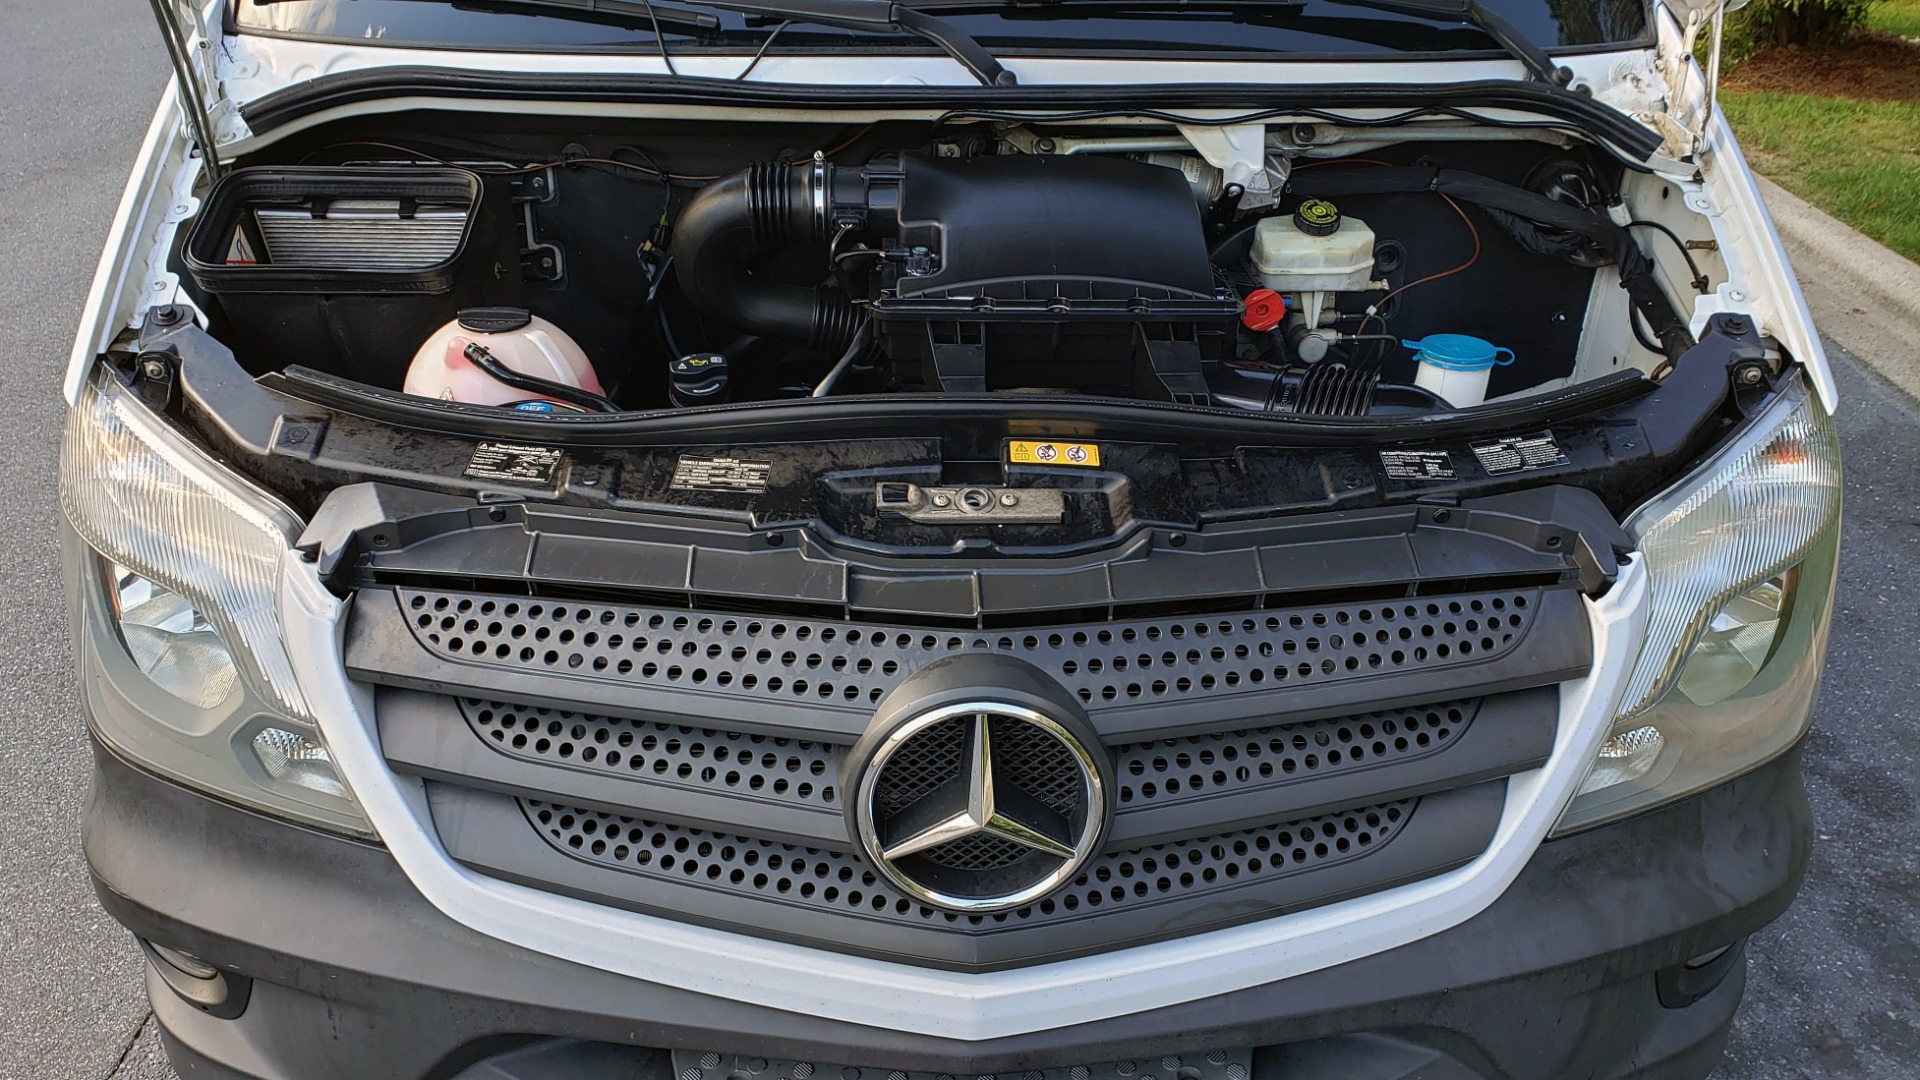 Used 2015 Mercedes-Benz SPRINTER CARGO VAN 4x4 3500 170 EXT / 3.0L V6 TURBO DIESEL / 5-SPD AUTO / REARVIEW for sale Sold at Formula Imports in Charlotte NC 28227 8